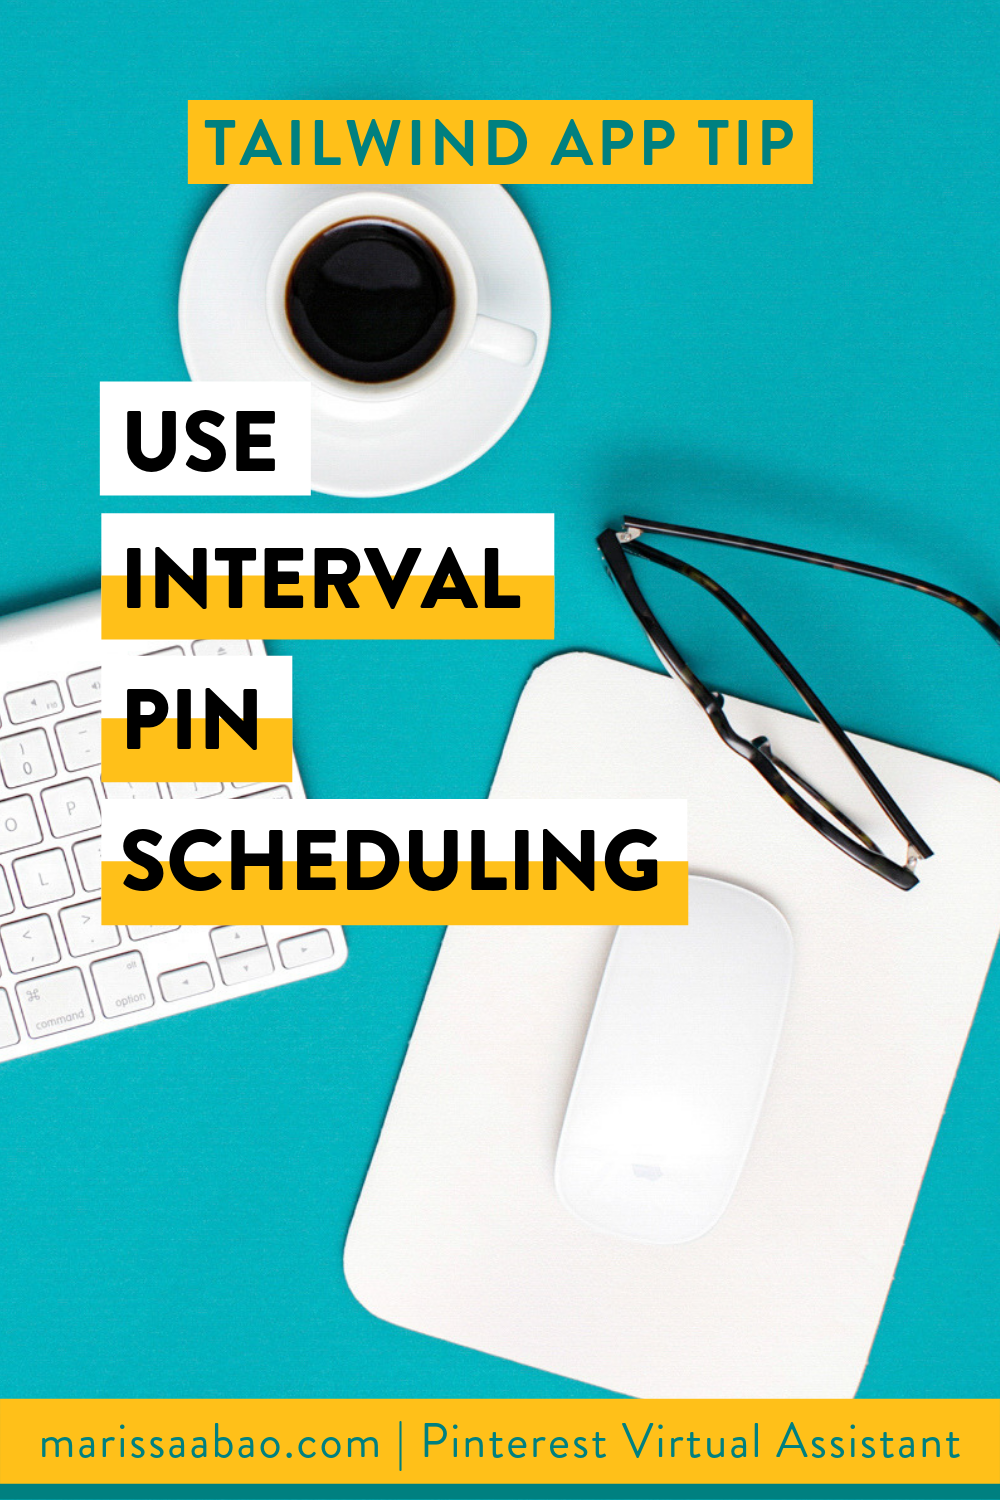 Tailwind App Tip: Use Interval Pin Scheduling - #tailwindapp #virtualassistant #pinterestvirtualasistant #pinterestva #pinterestmarketing